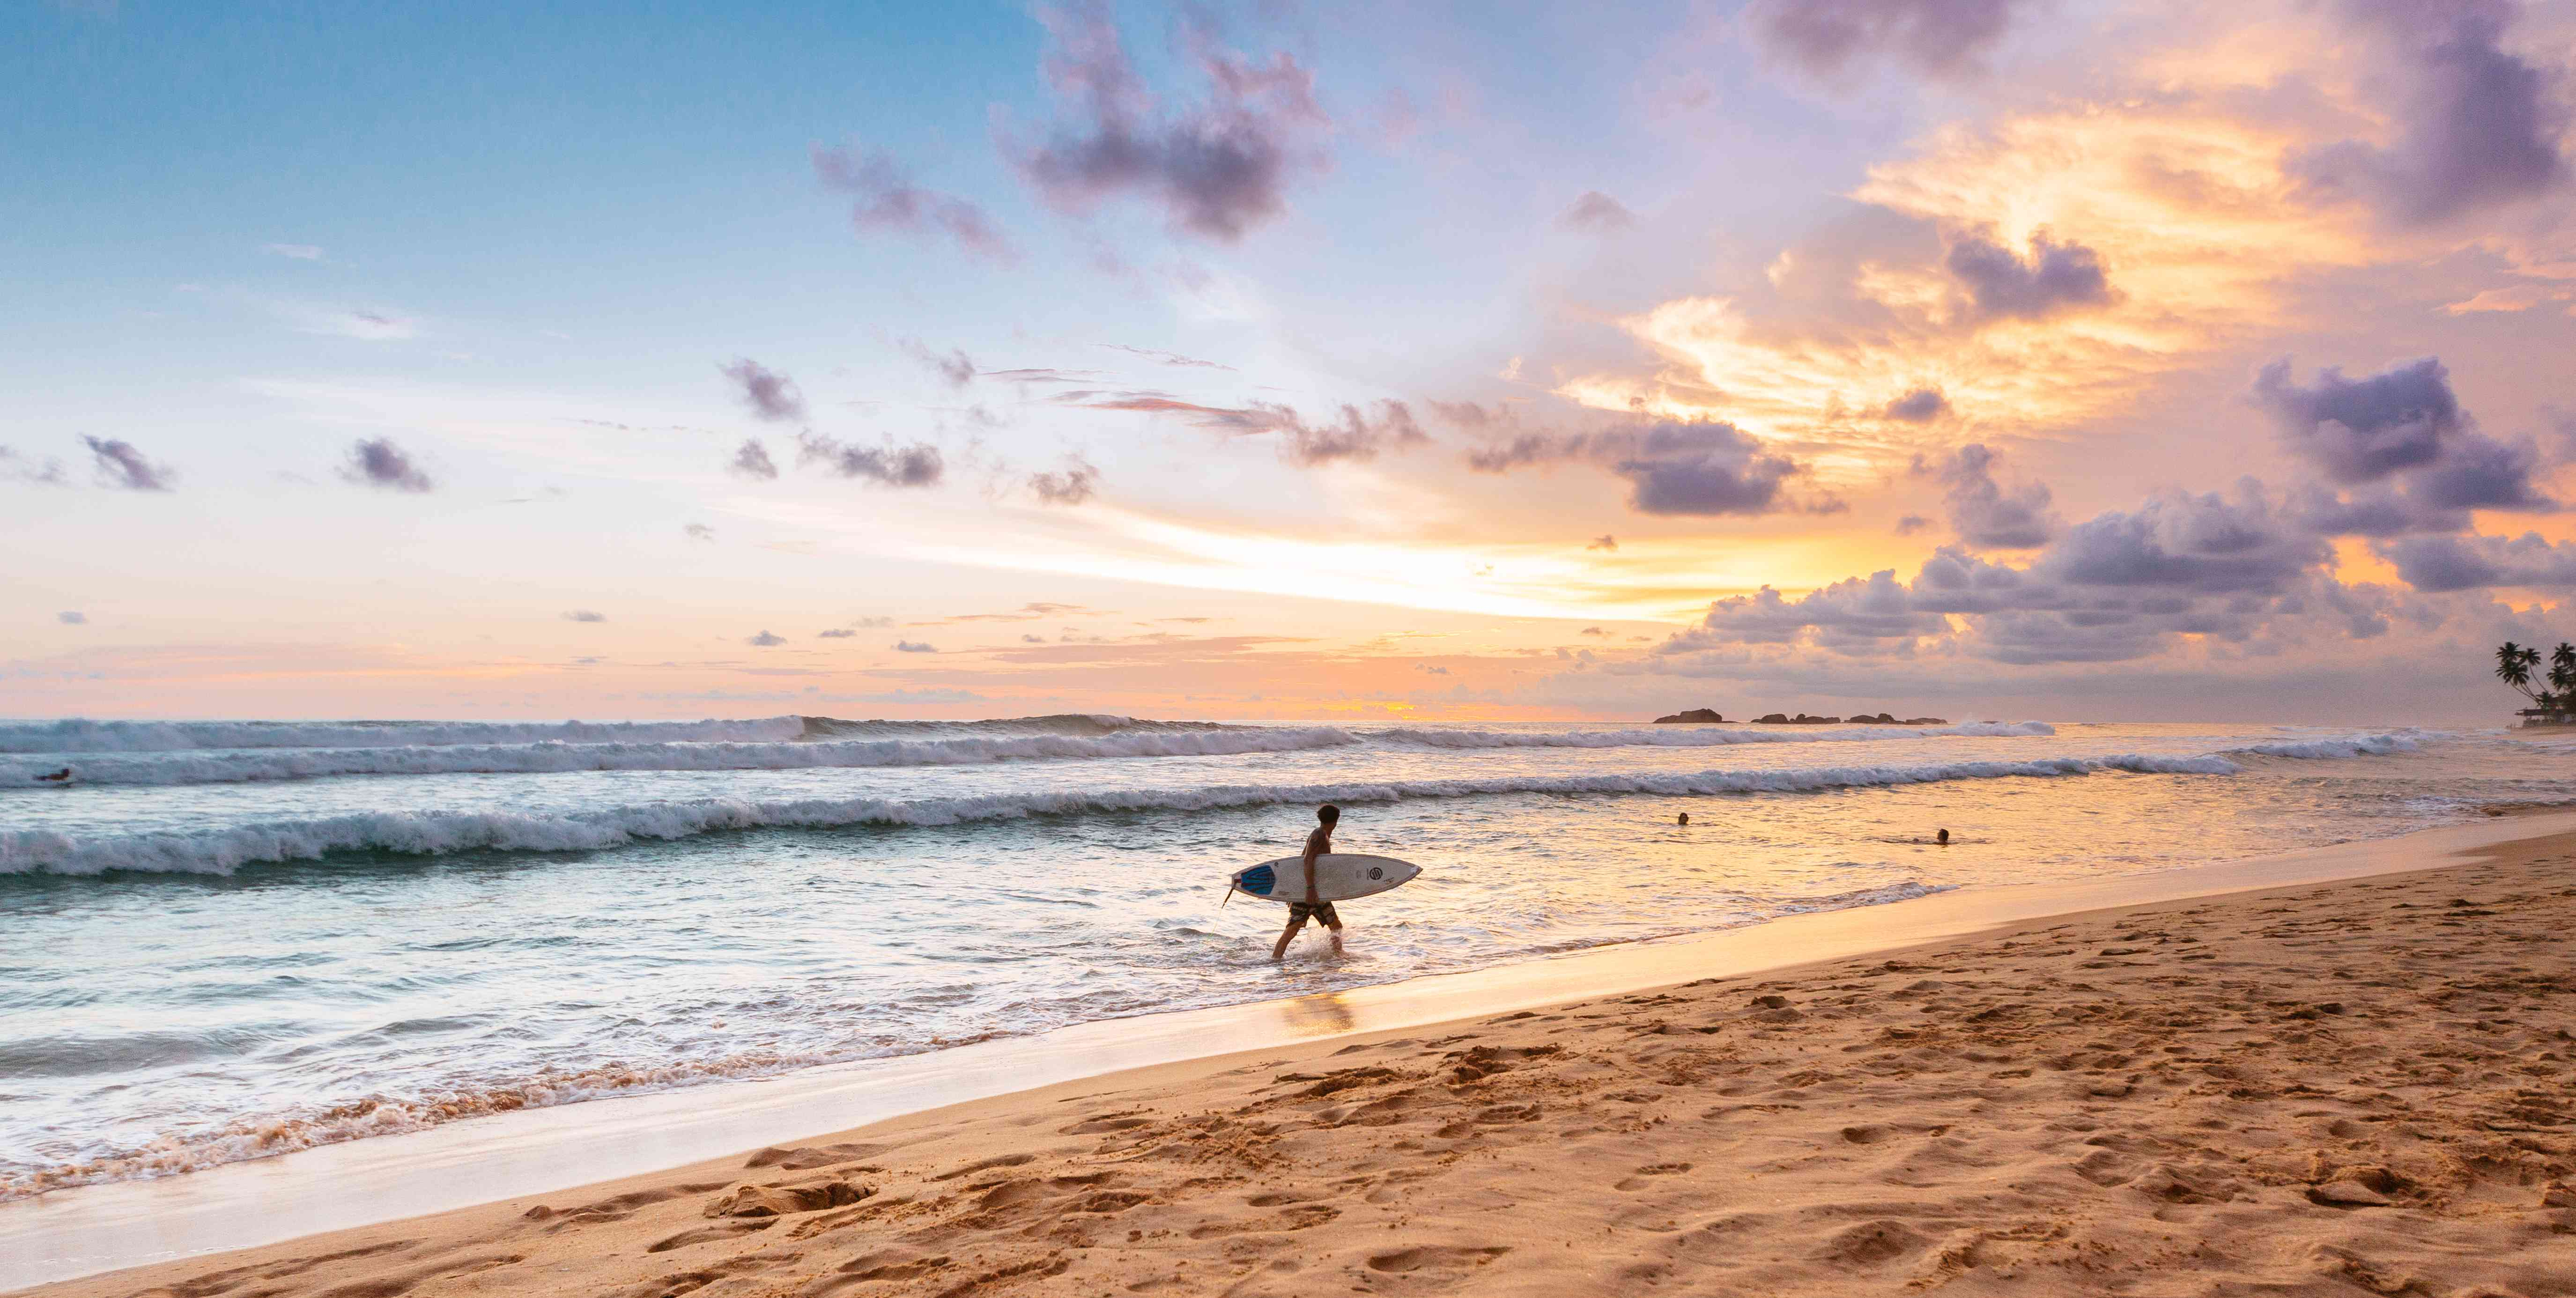 Surfer carries a board at sunset on Narigama Beach